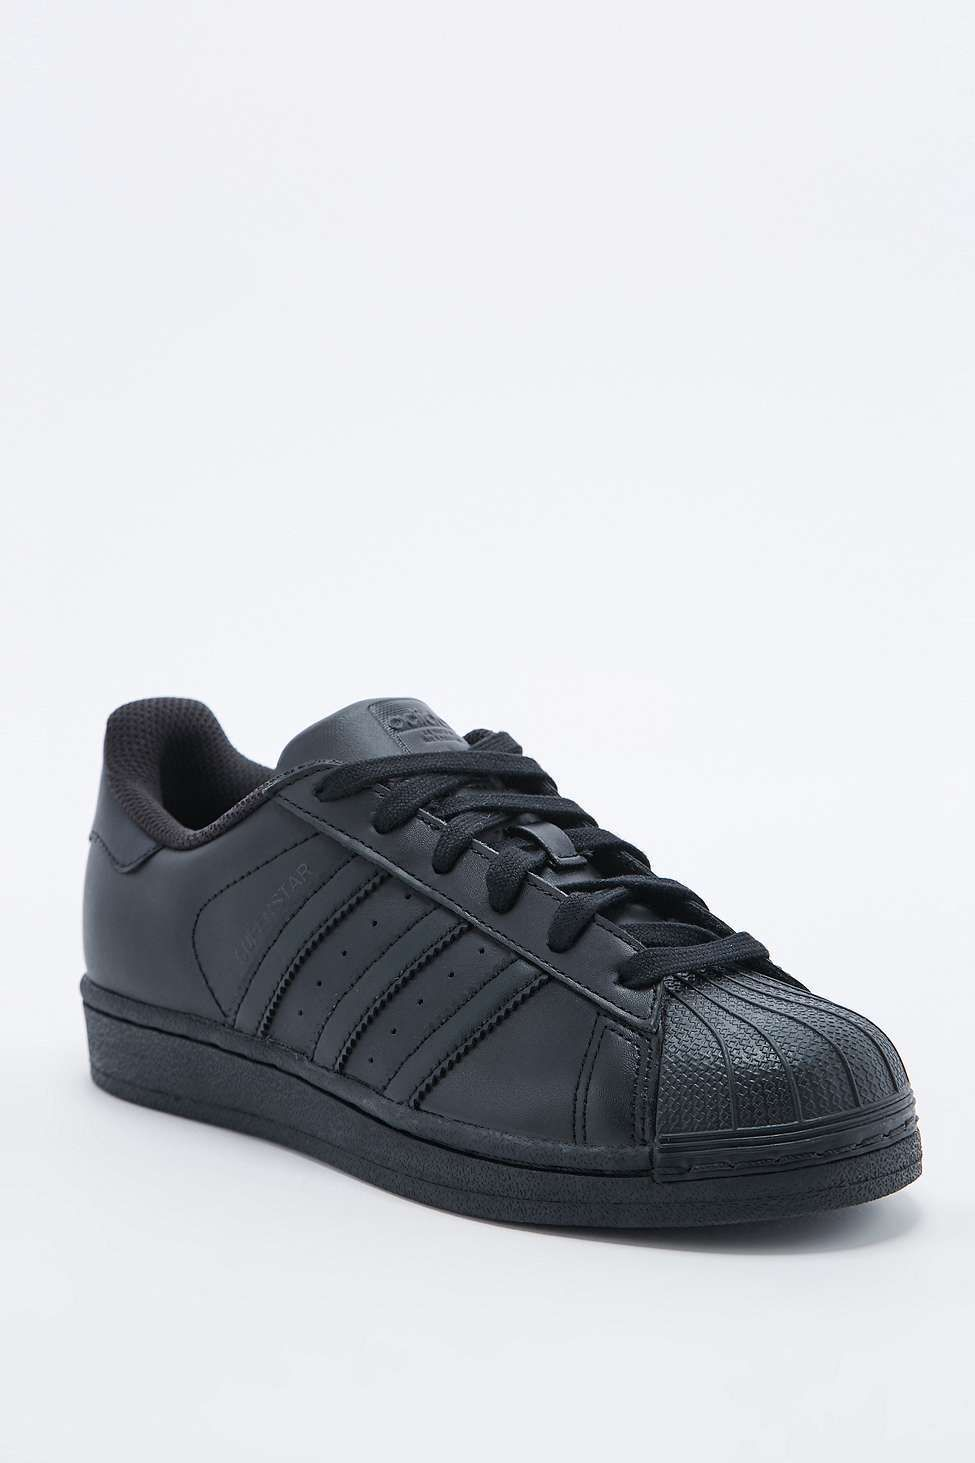 sports shoes 21b52 f83a7 Adidas Superstar All Black Trainer